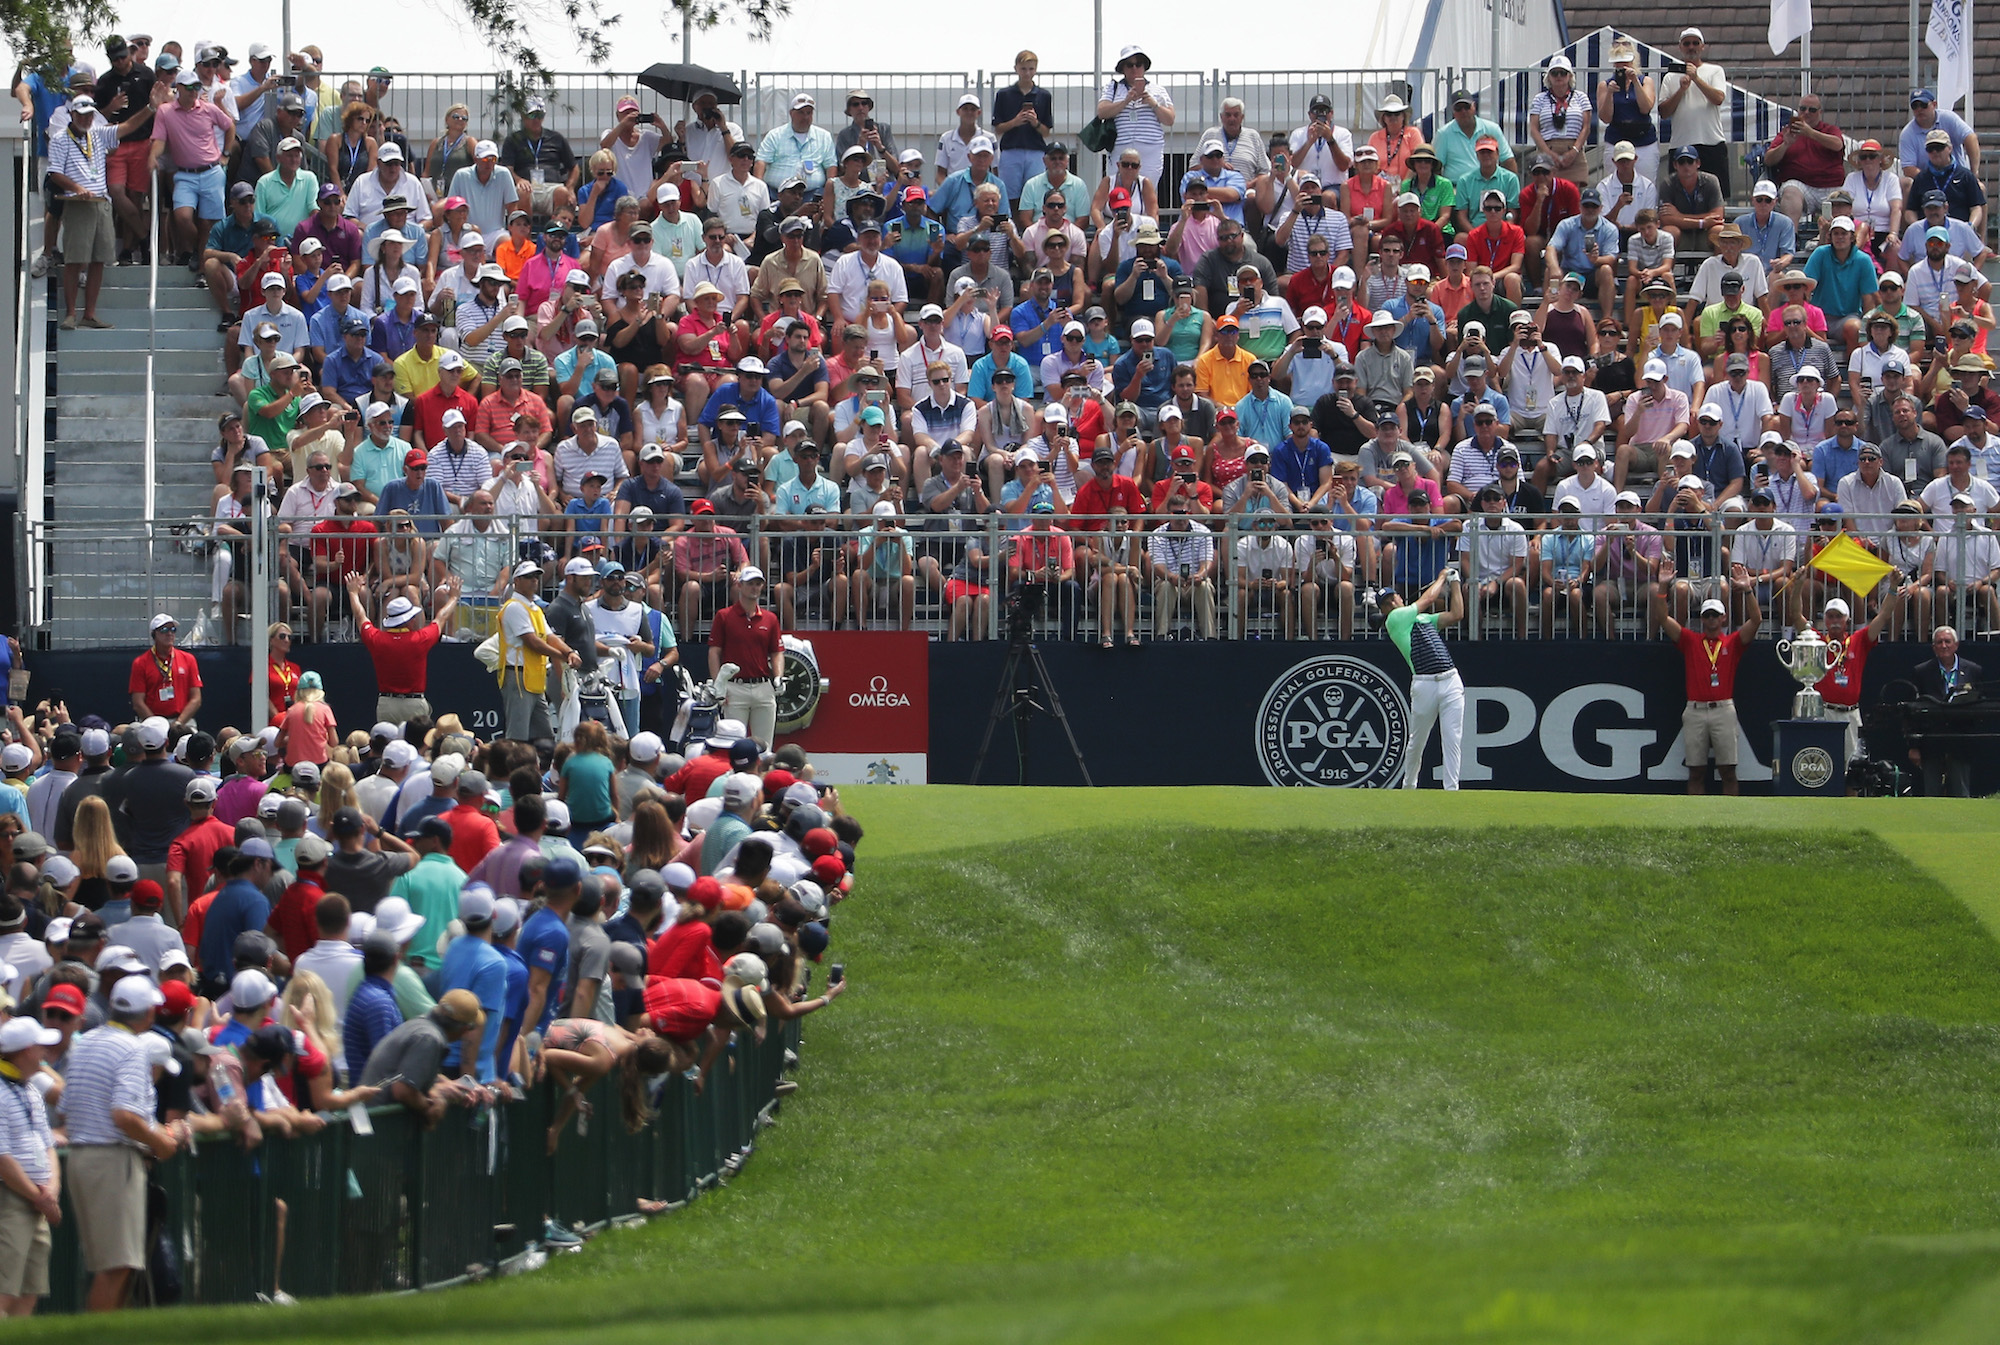 2018 PGA Championship: Round 1 - Tee Shot on Opening Hole